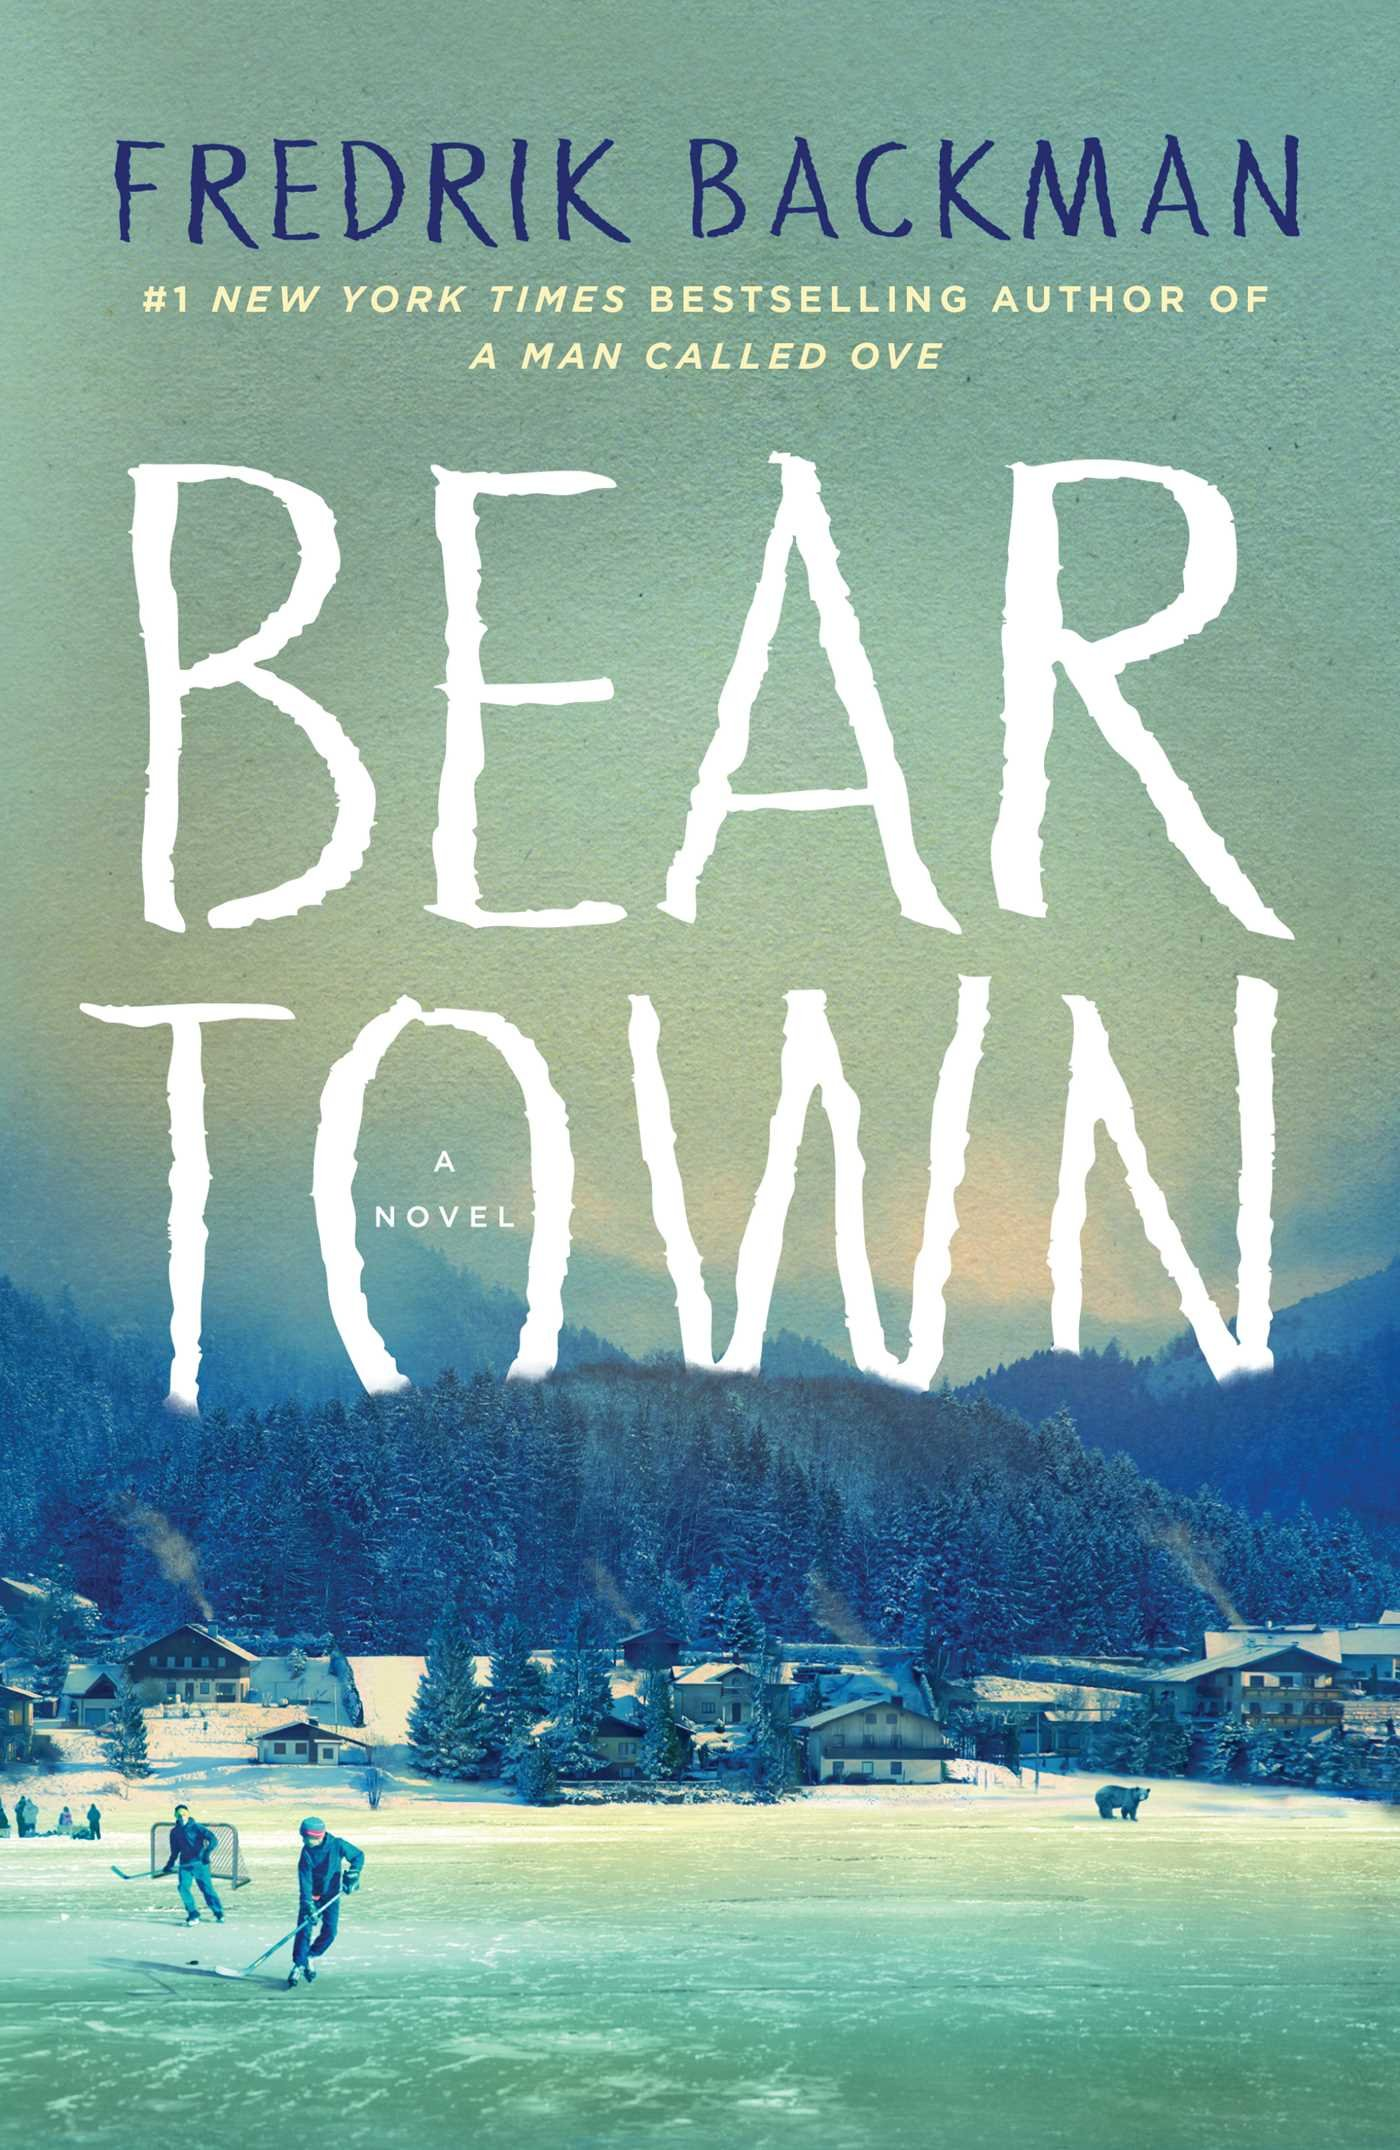 Beartown by Fredrik Backman (cover) Image: a small town set against the mountains and kids playing hockey in the foreground